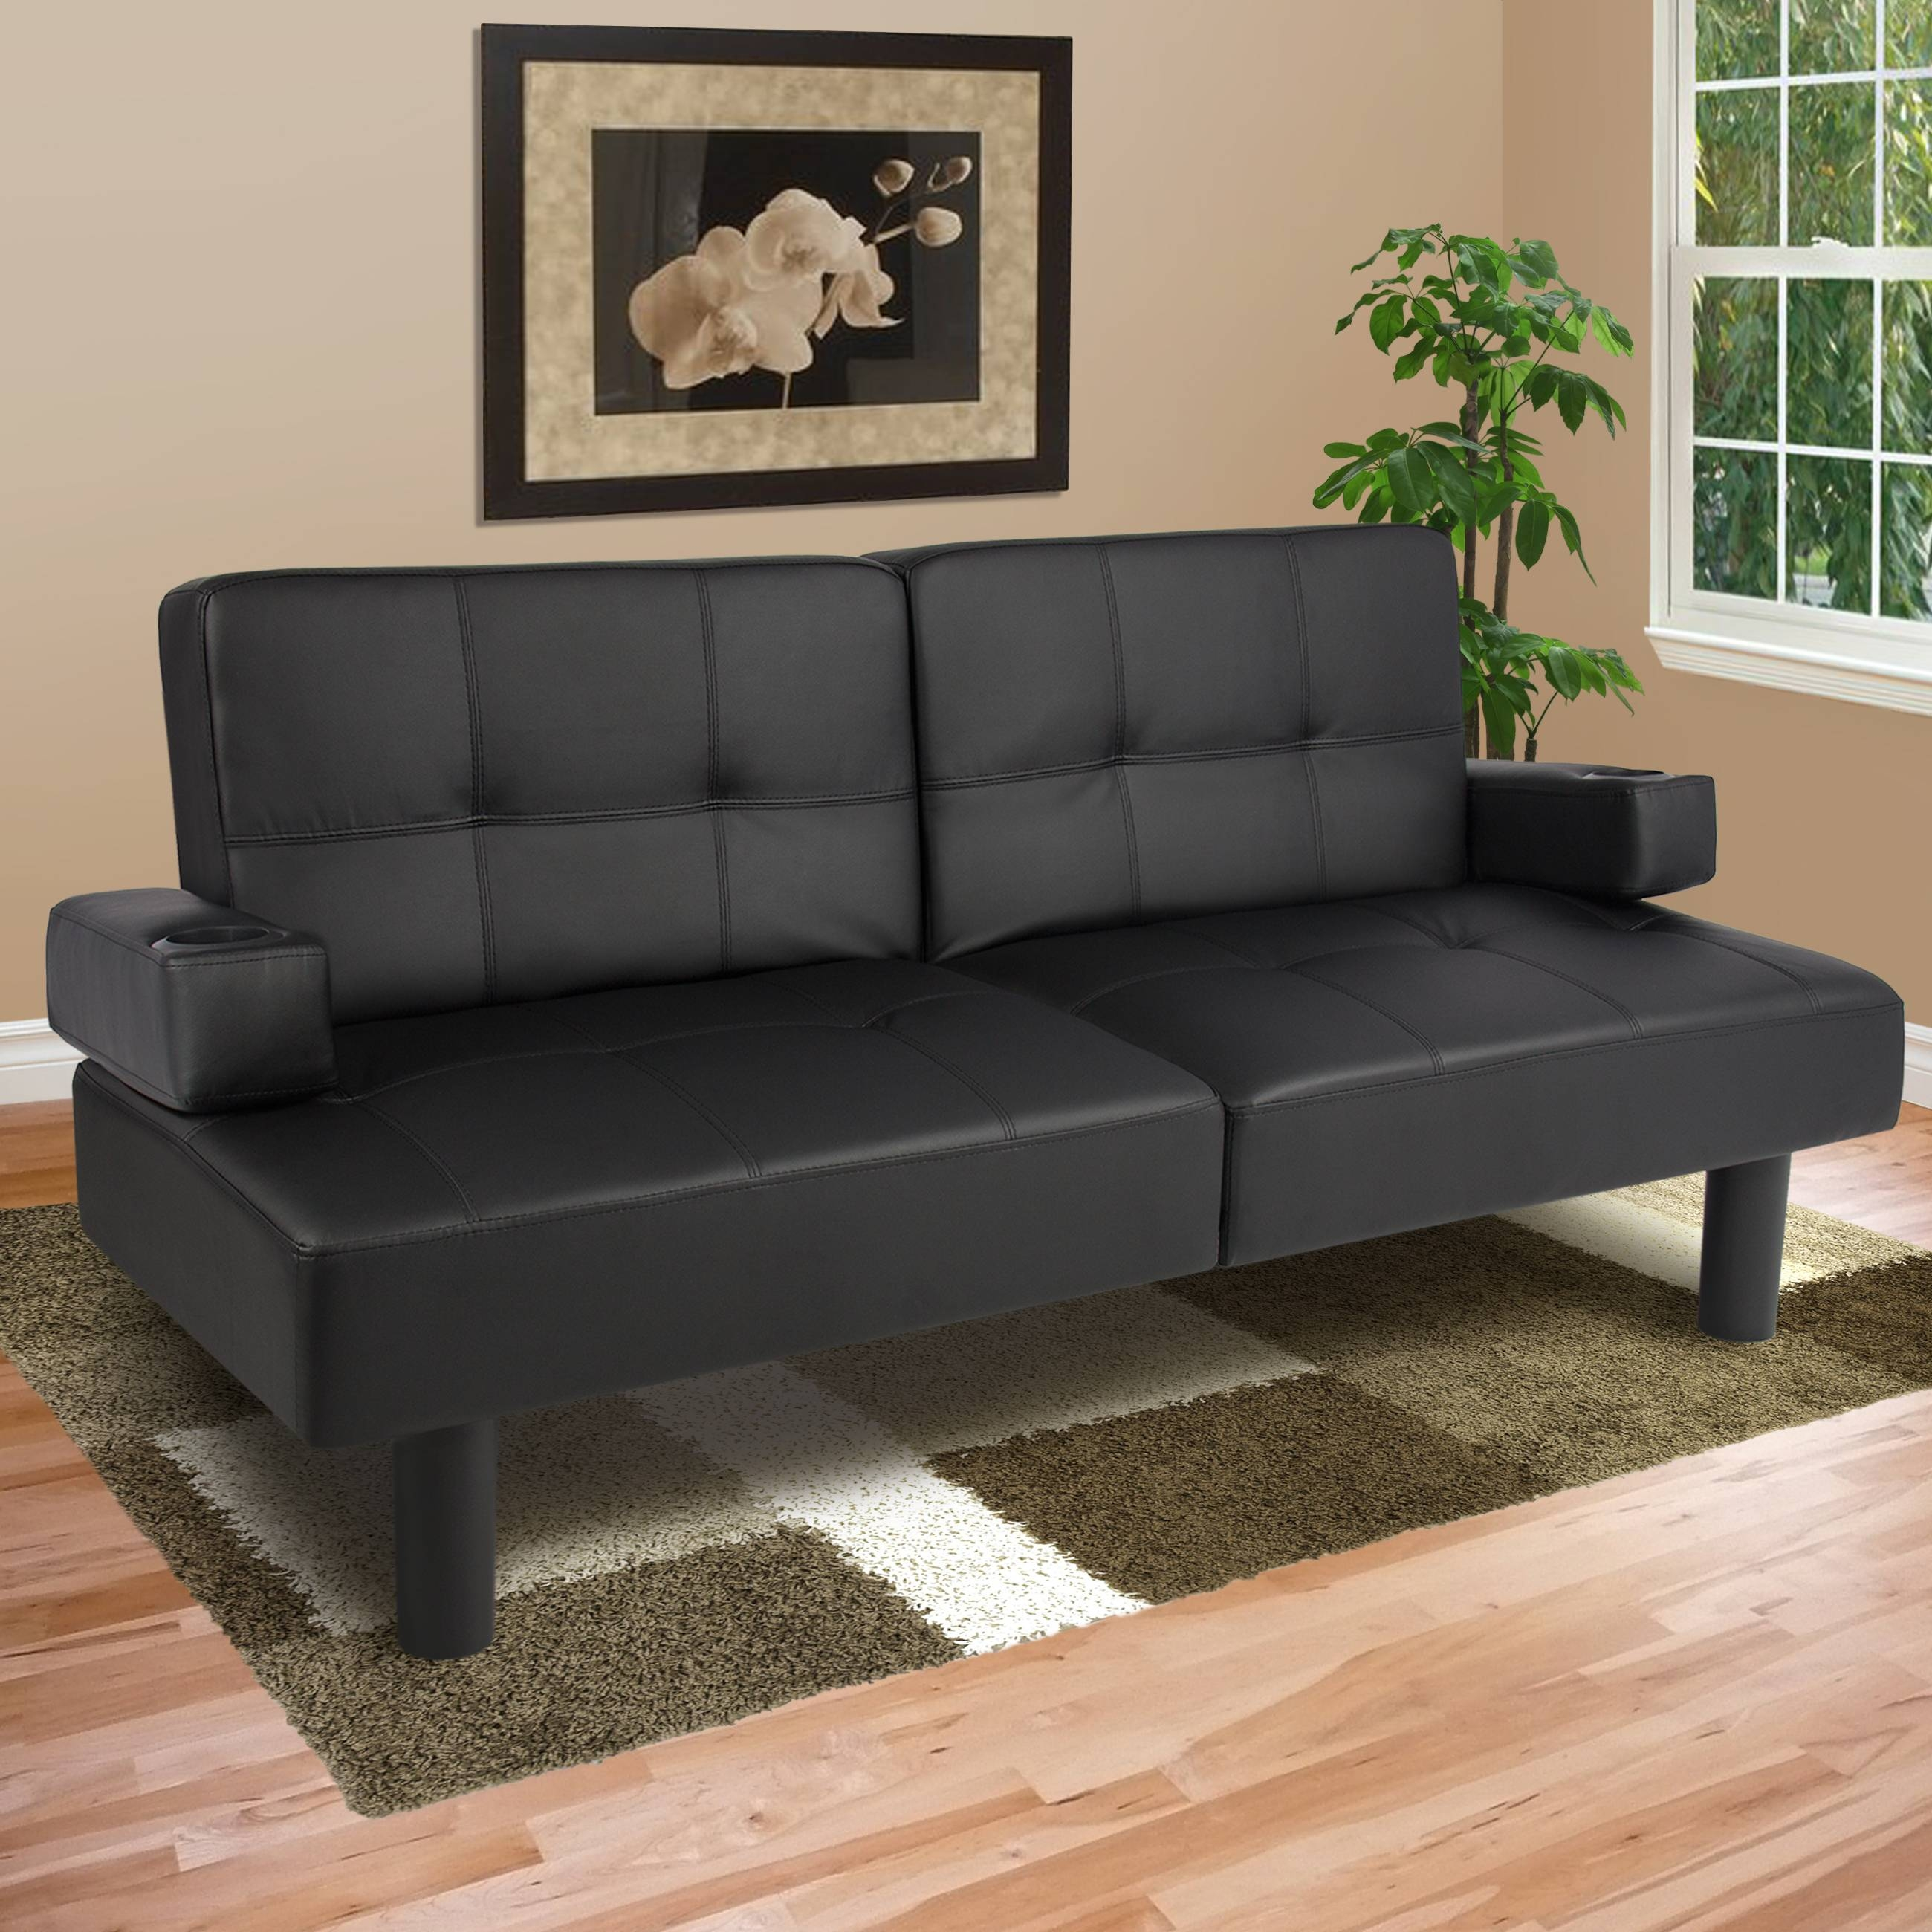 Best Choice Products Modern Leather Futon Sofa Bed Fold Up & Down With Futon Couch Beds (View 15 of 15)